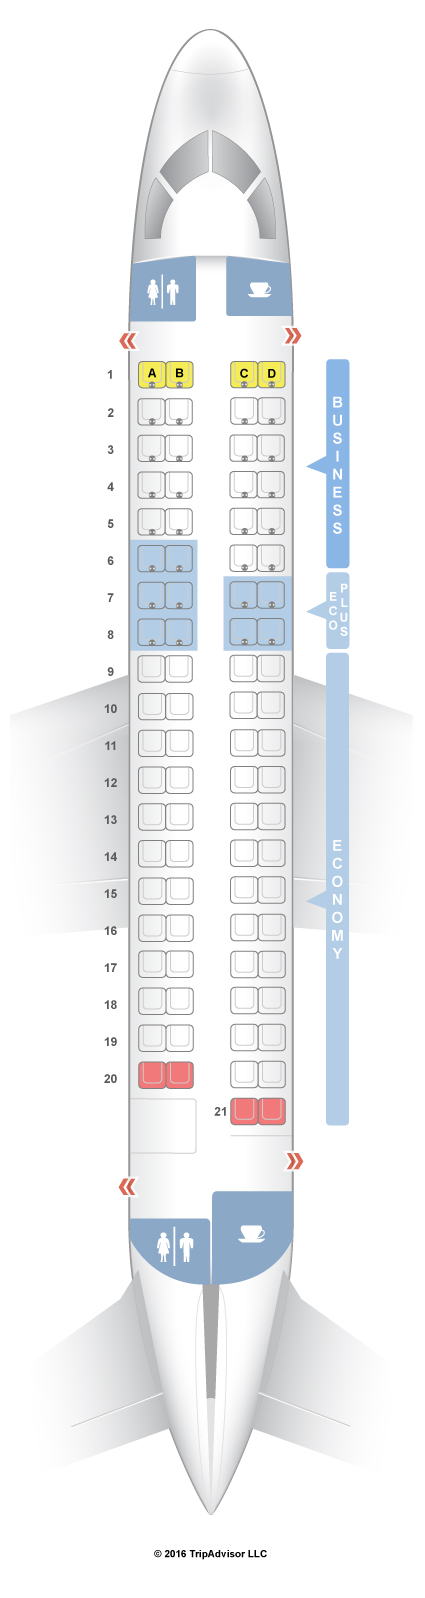 Embraer 175 Seating Russian 1000 Words